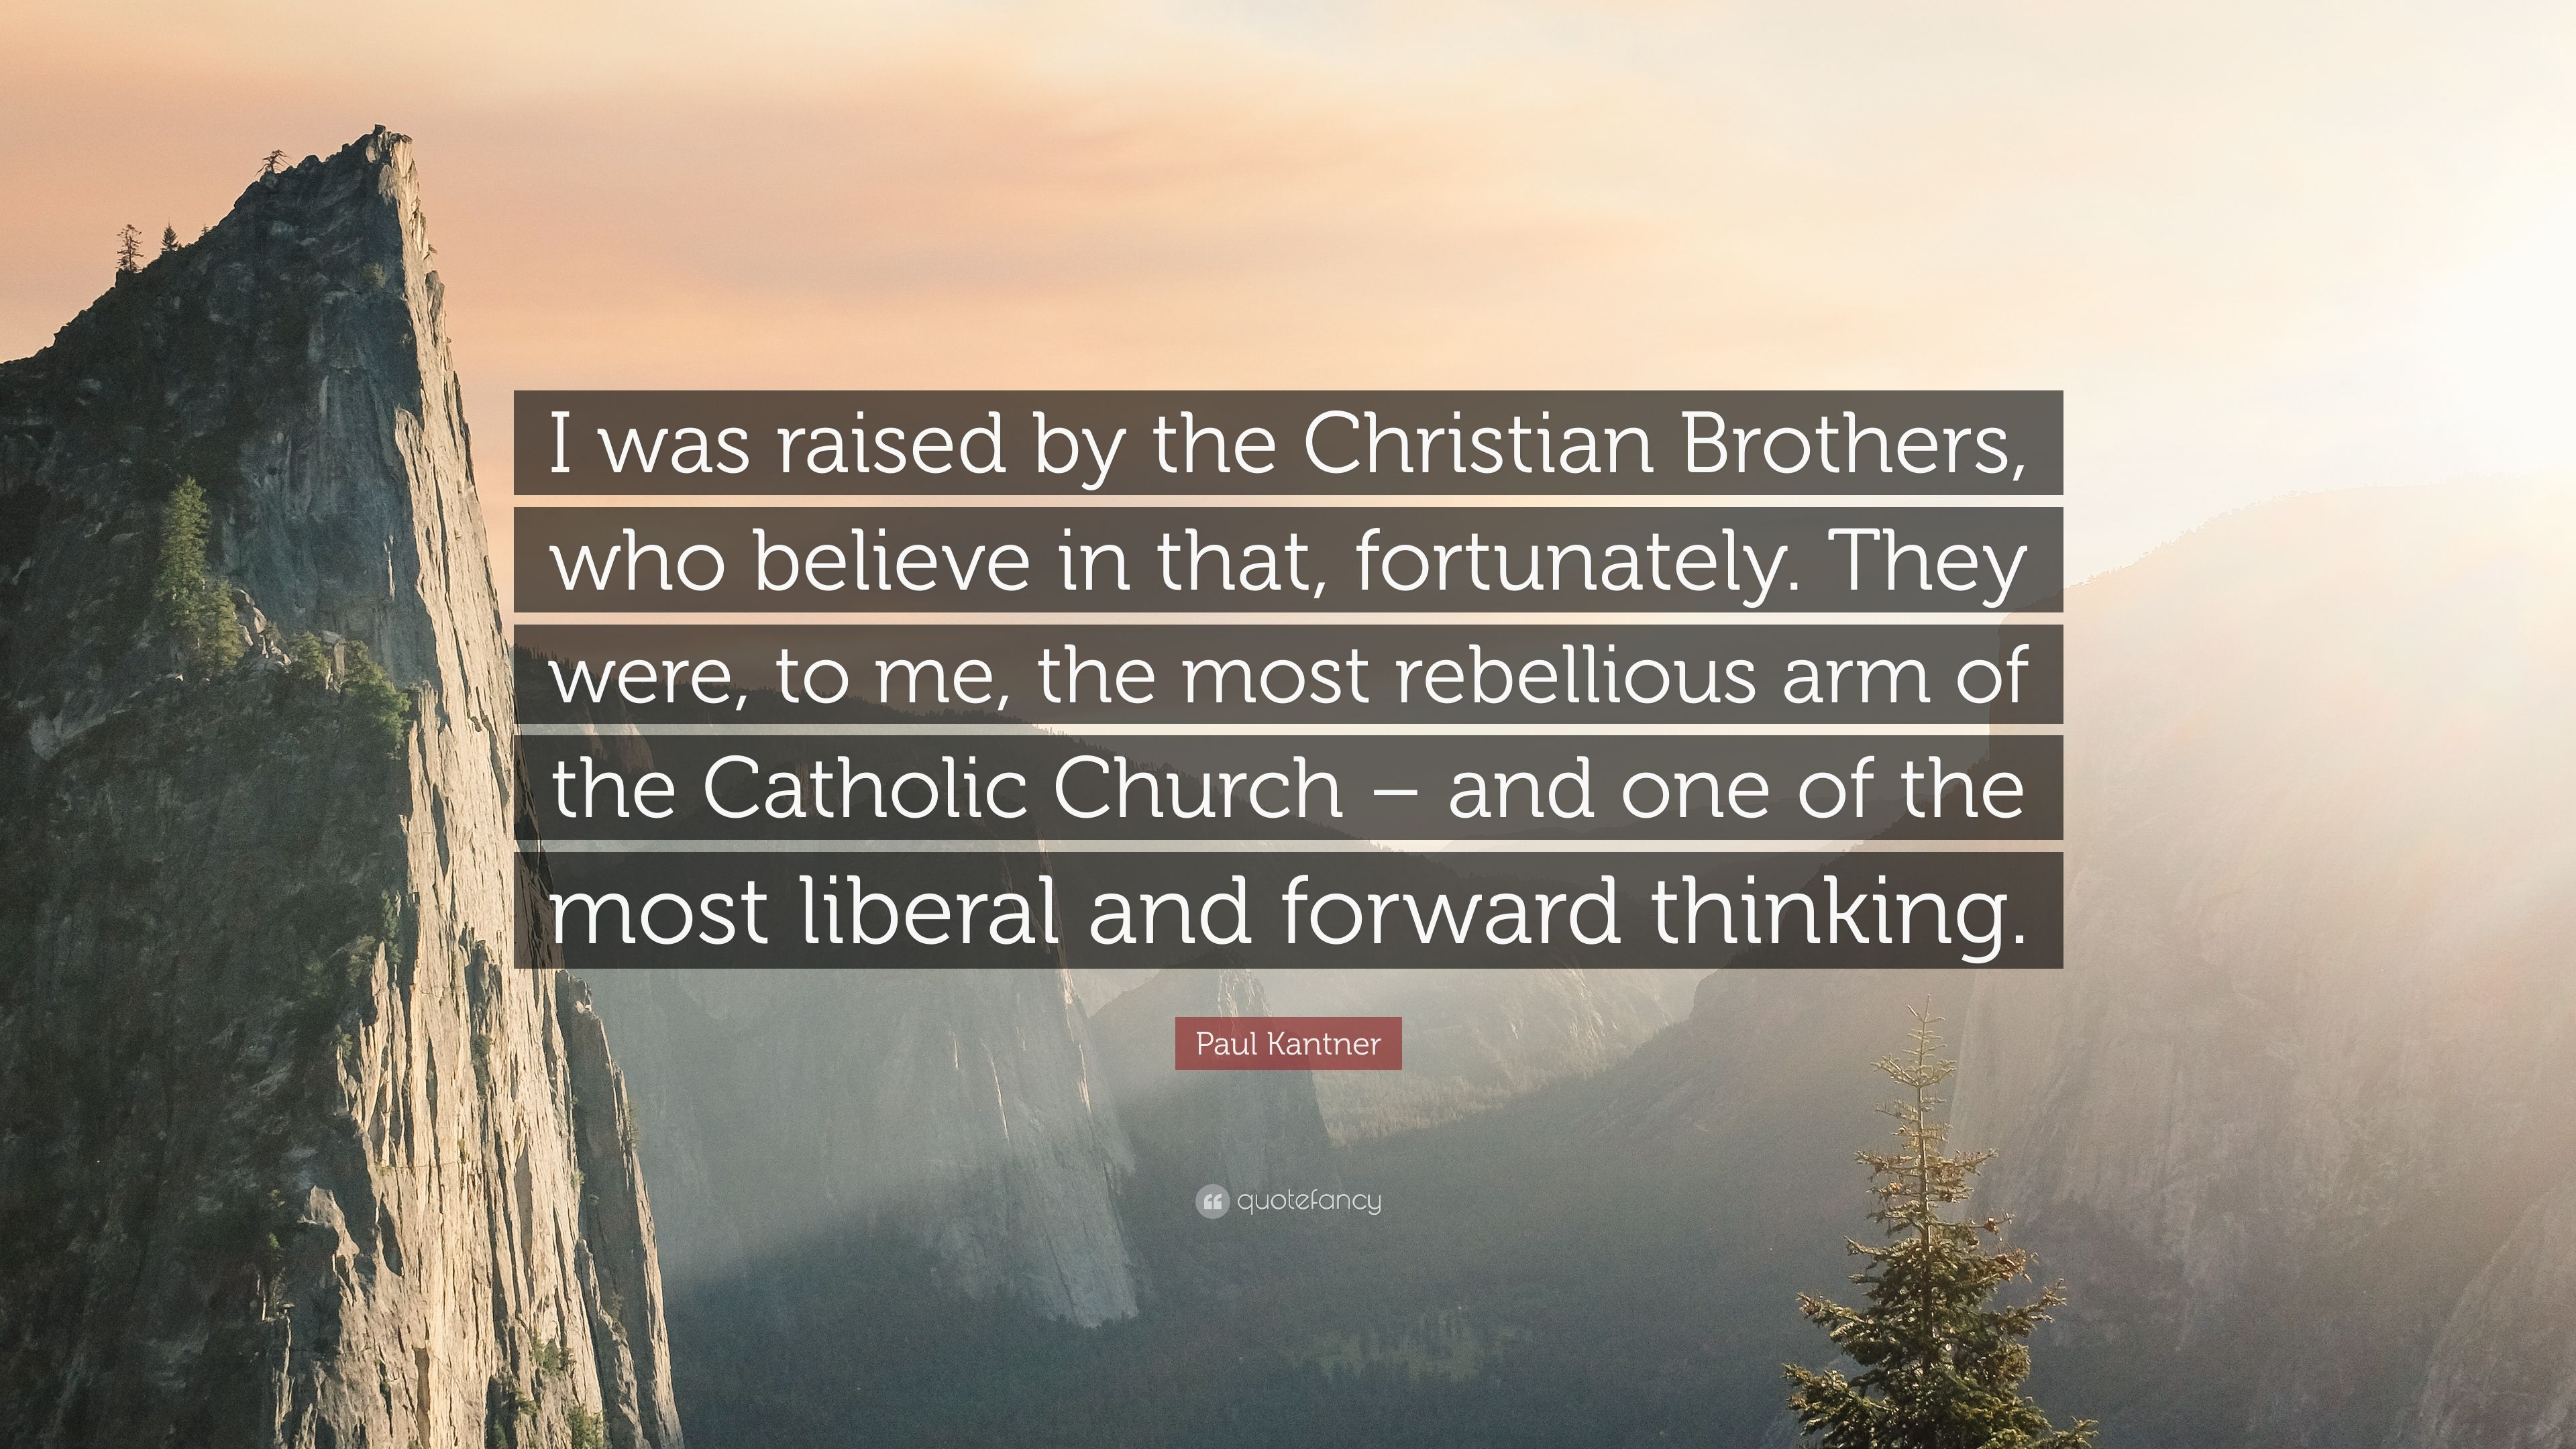 Christian Brothers Near Me >> Paul Kantner Quote I Was Raised By The Christian Brothers